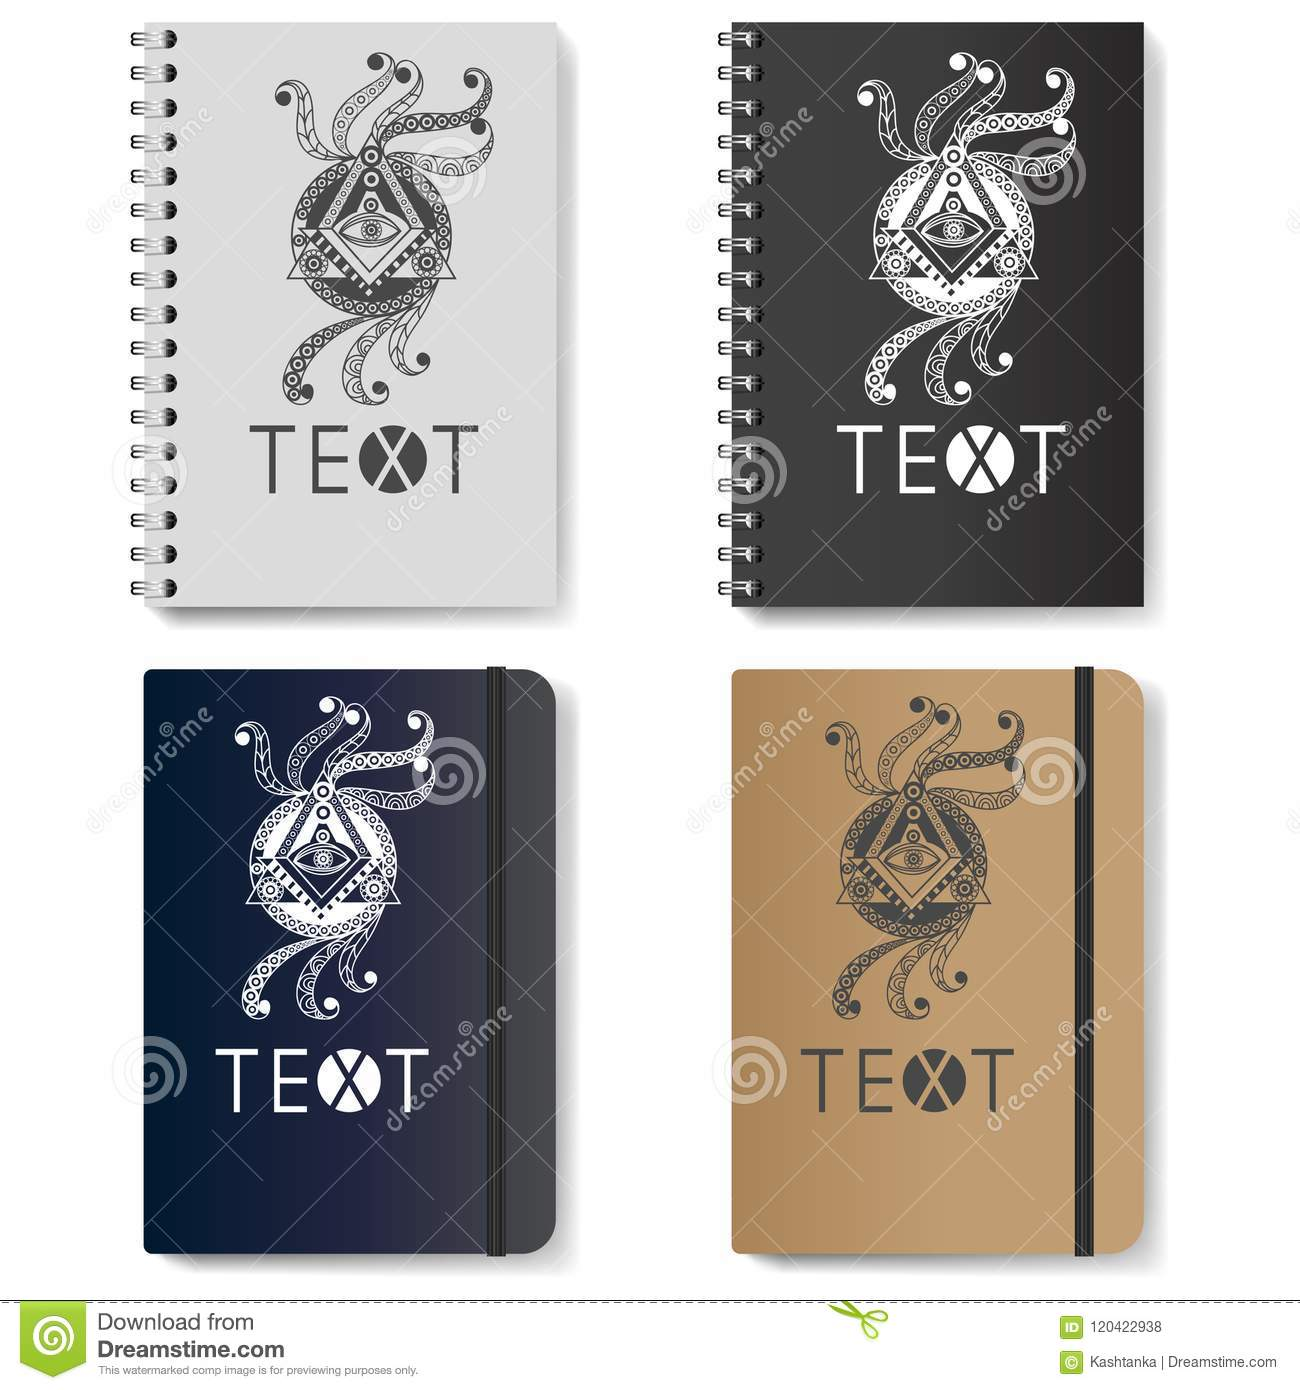 Graphic Illustration With Diaries With Symbols 3 Stock Vector